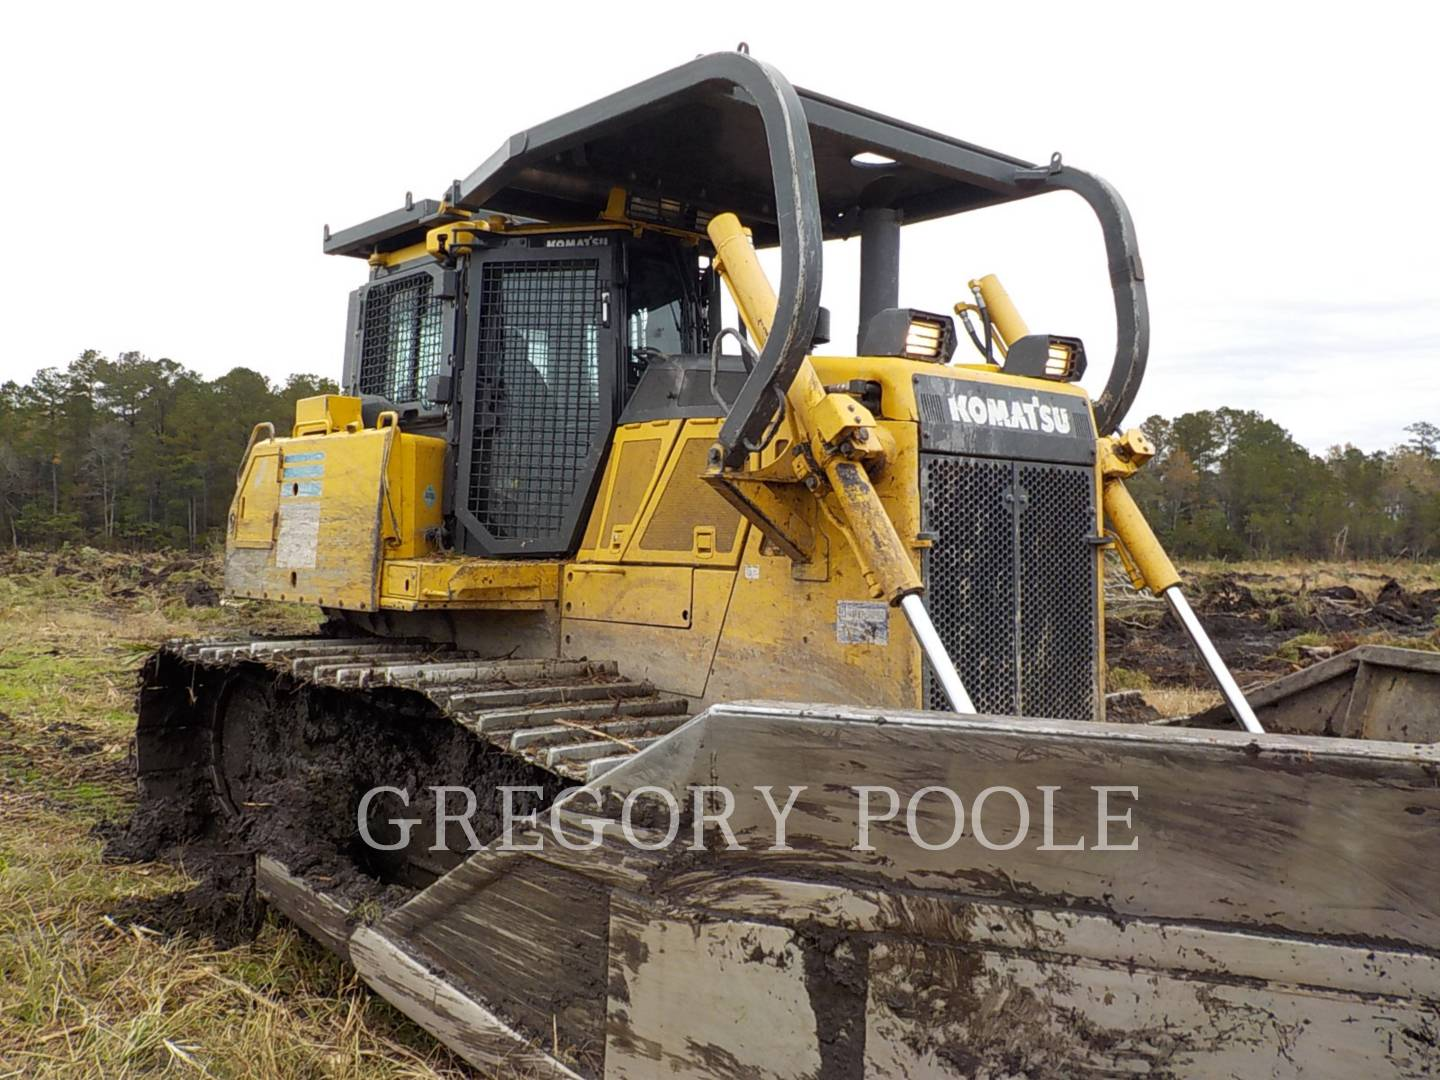 2016 Komatsu D85PX-18 Dozer for sale in RALEIGH, NC | IronSearch